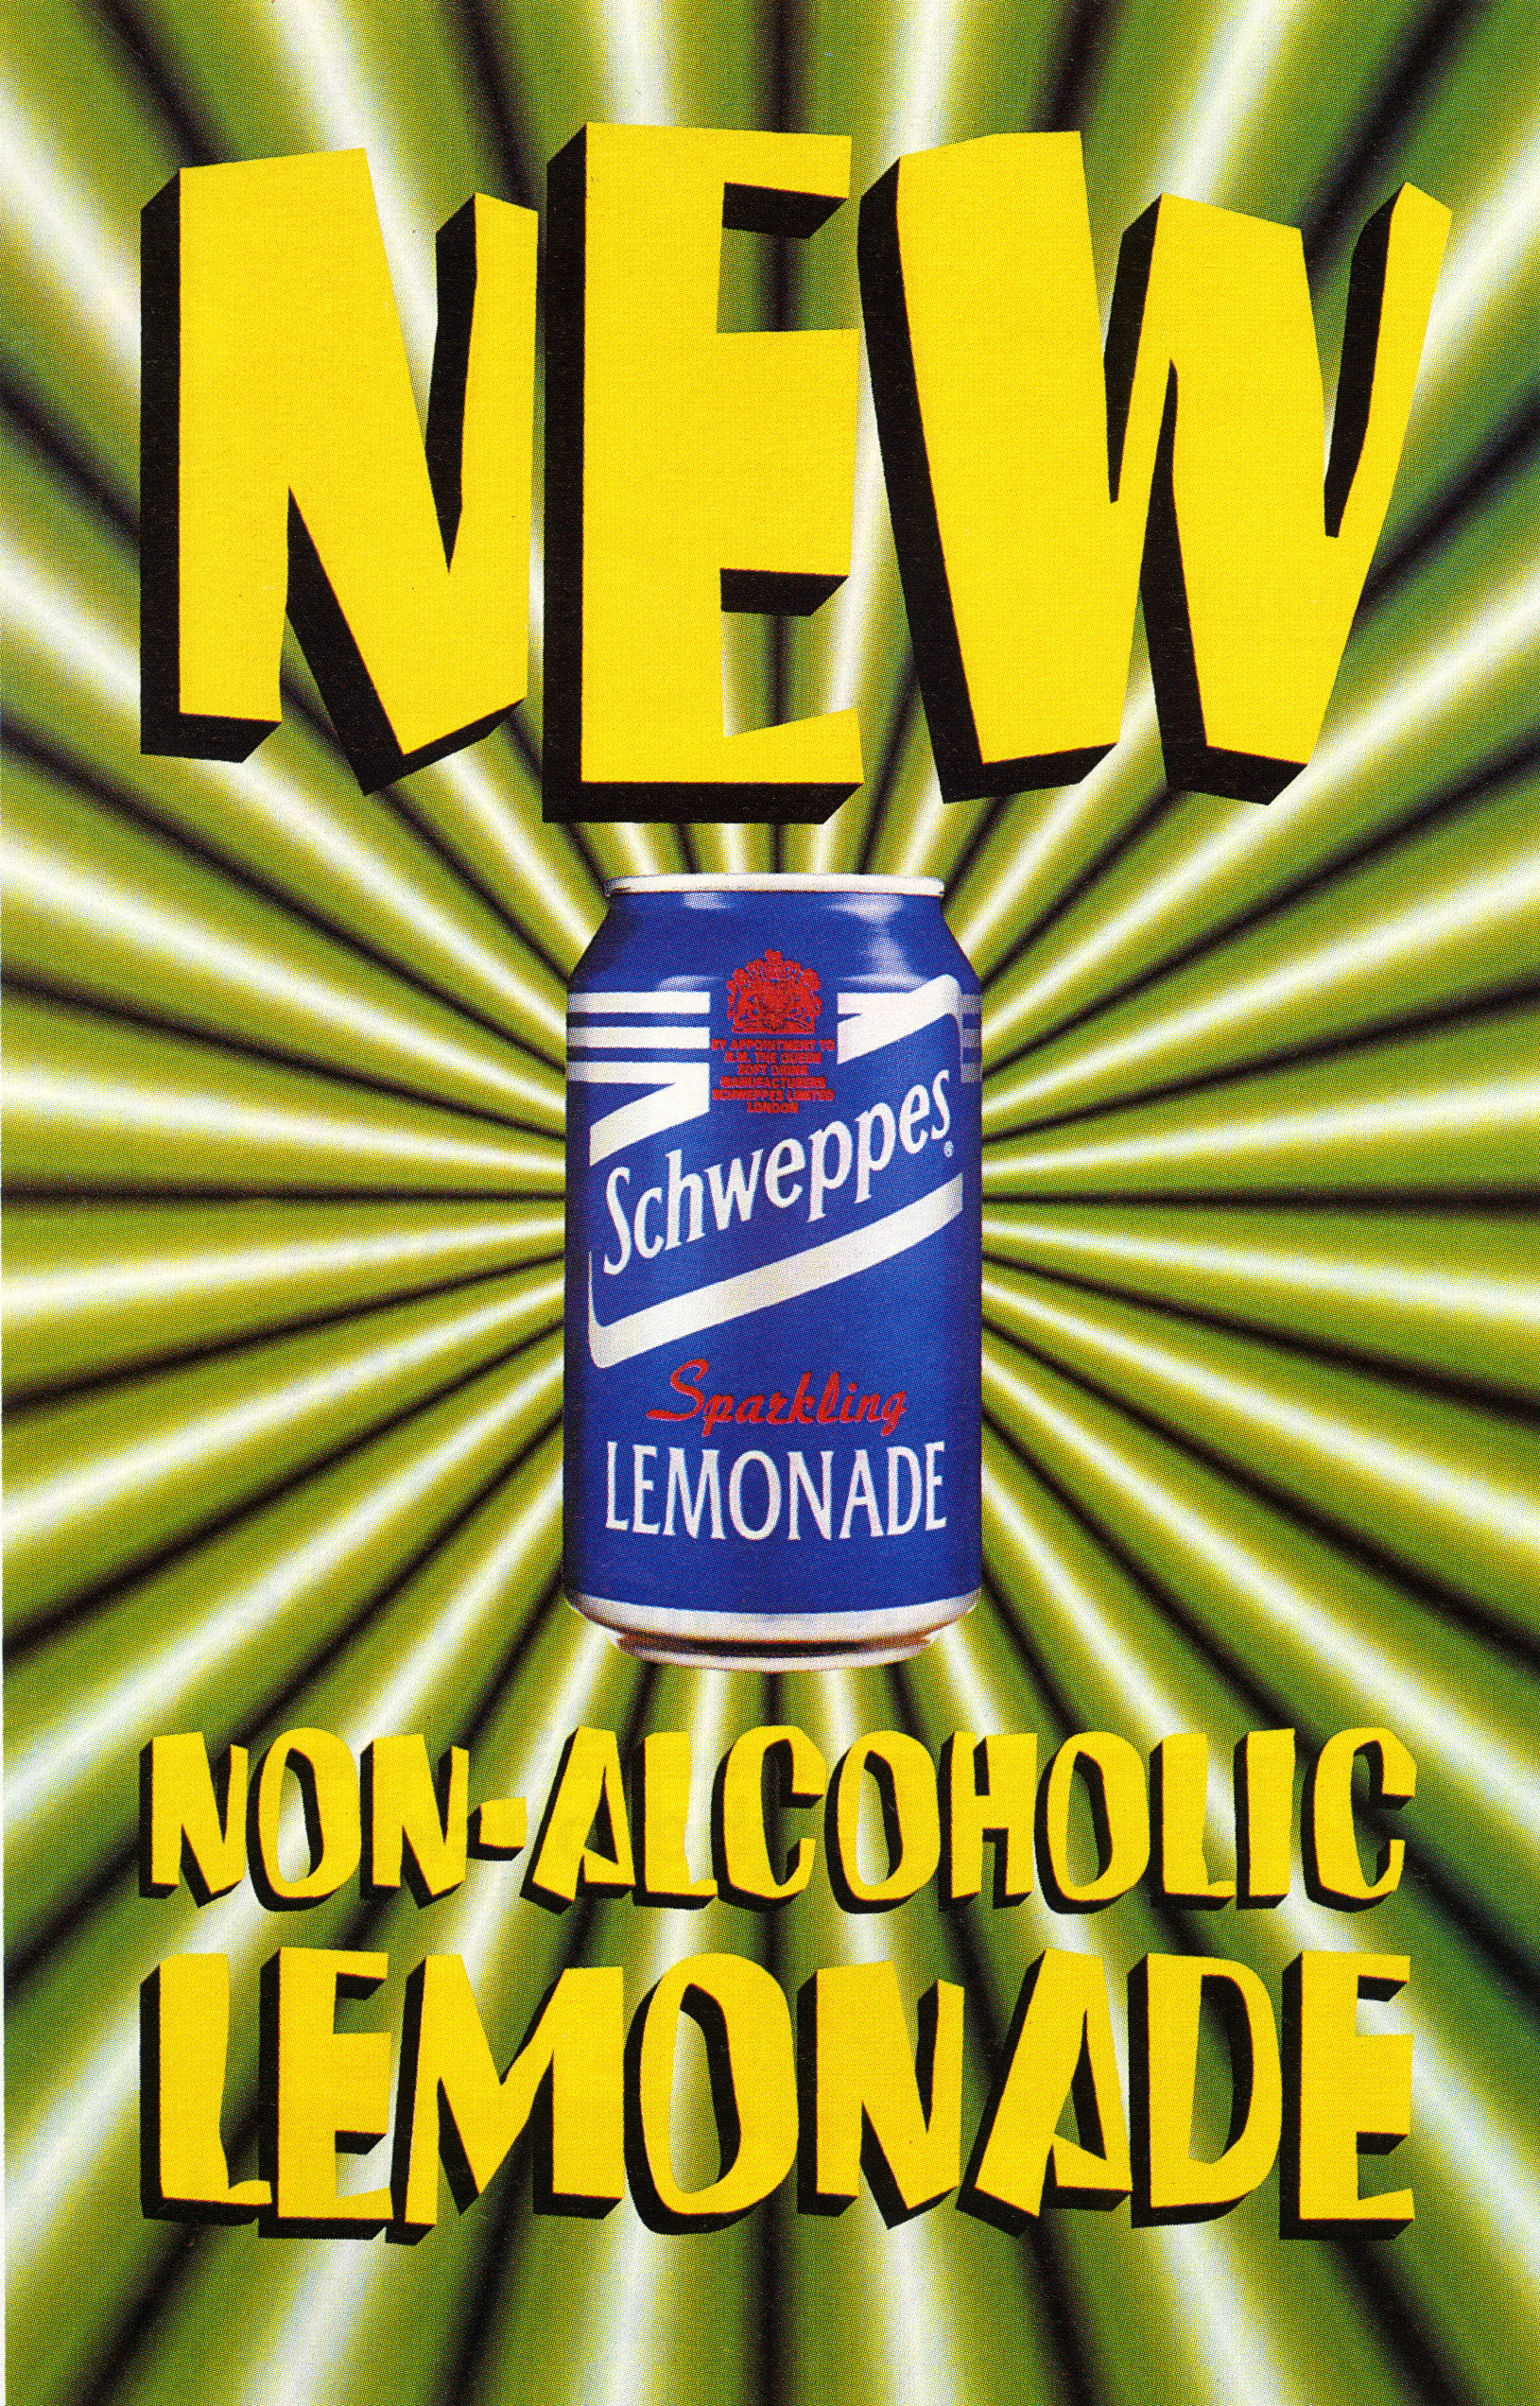 Andy McCleod, Schweppes 'Non', BMP:DDB.